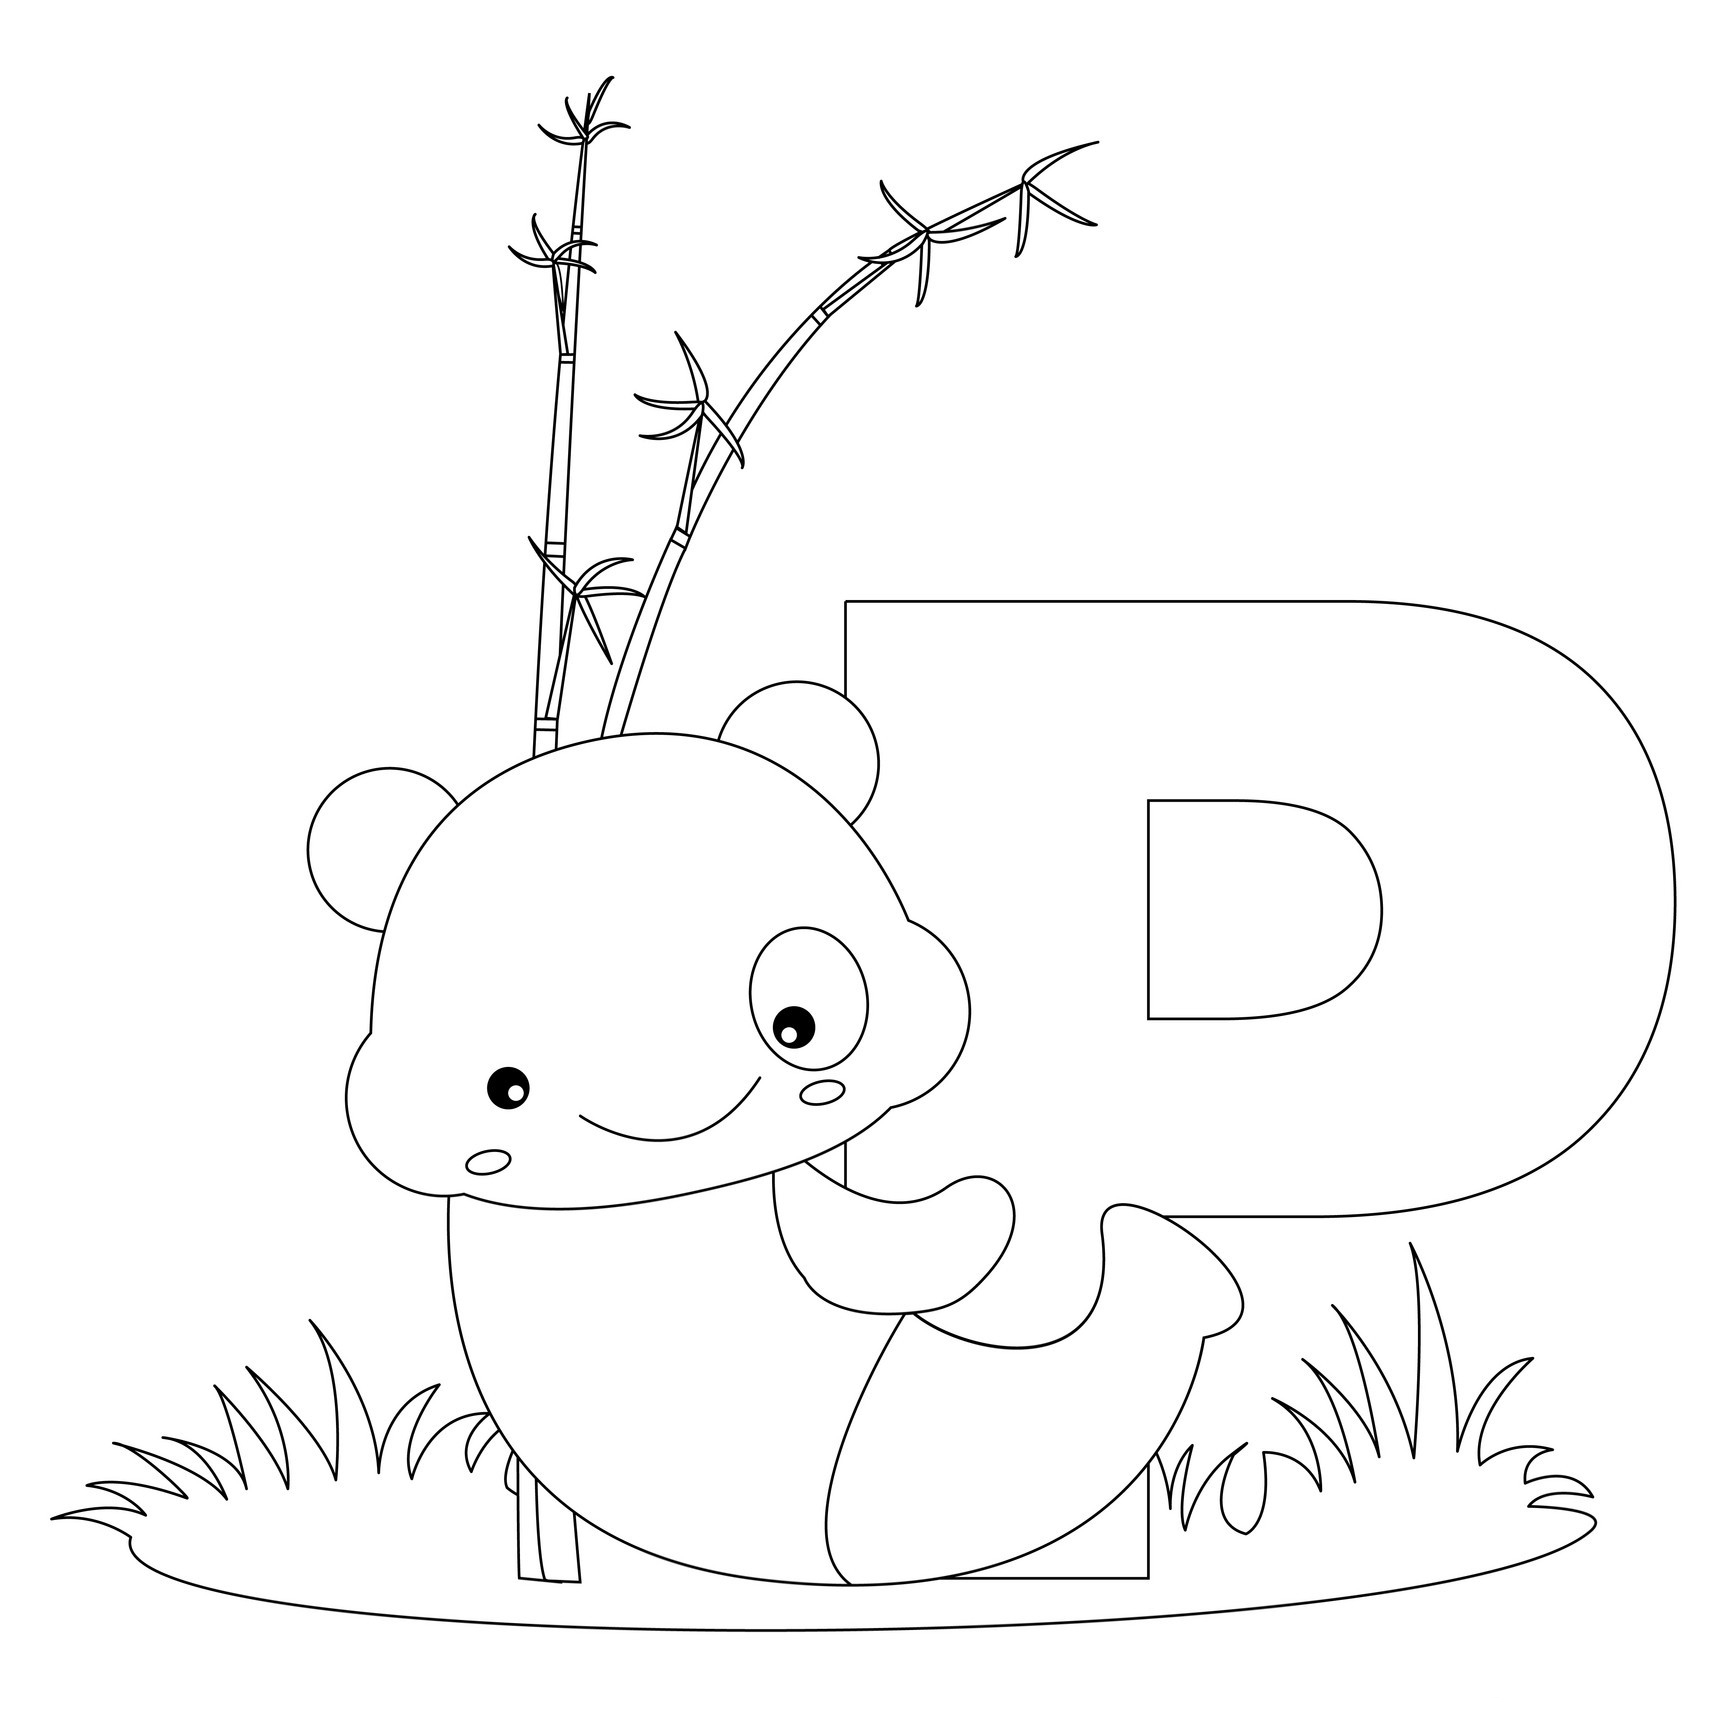 p coloring worksheet letter p is for puppy coloring page free printable coloring worksheet p